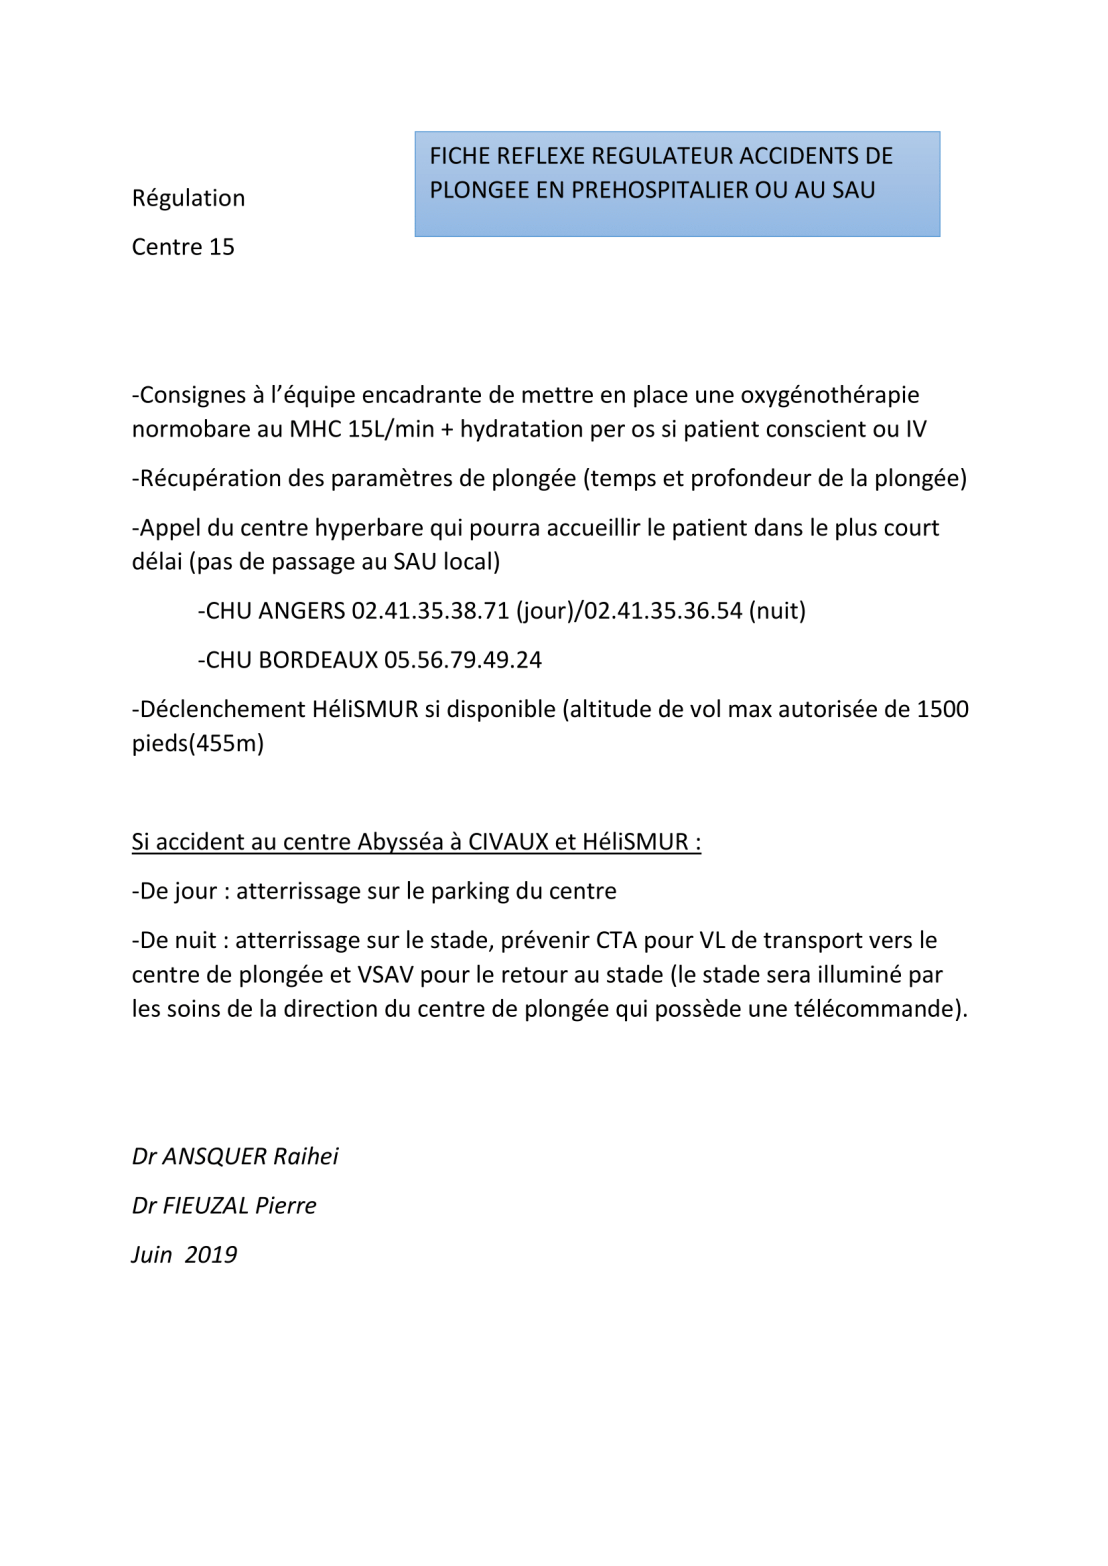 fiche reflexe regulateur 2 (1)-1